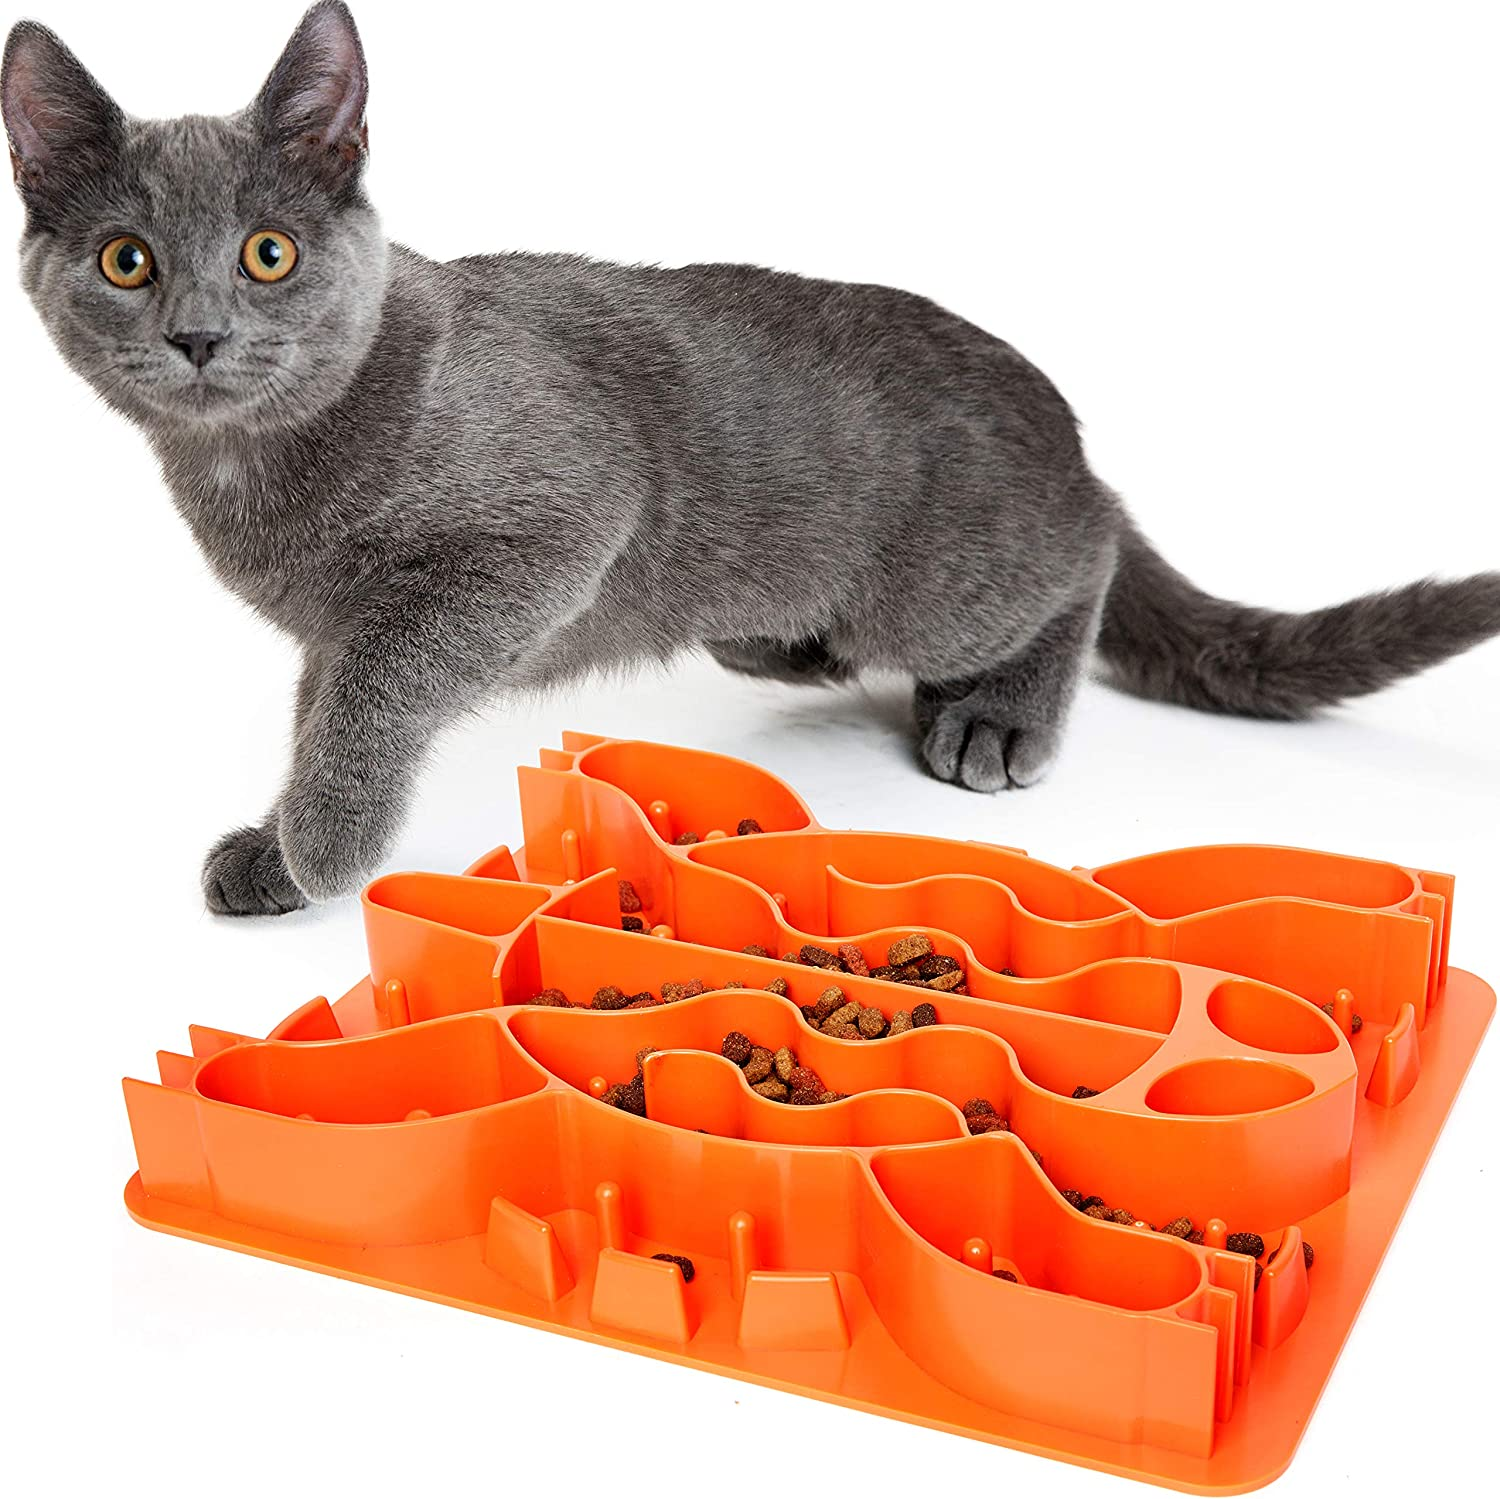 Slow Feeder Cat Bowl - Interactive Food & Treat Puzzle Feeder - Slow Feed Maze Activity Toy to Promote Healthy Eating & Portion Control - Food Grade Material - Non-Slip & Dishwasher Safe